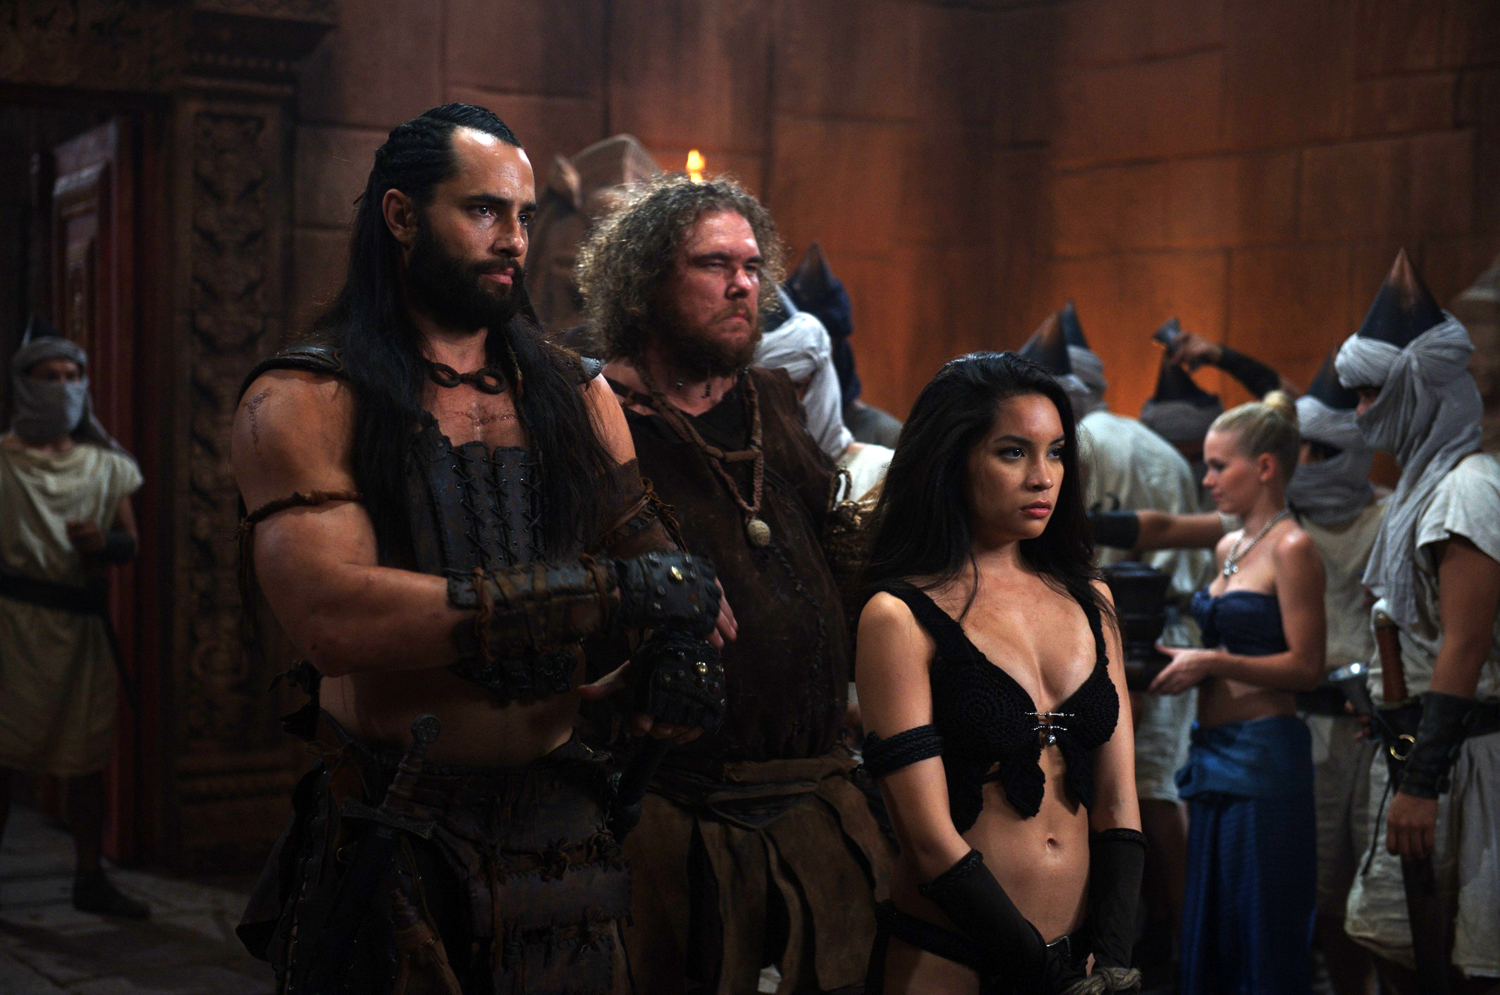 Scorpion King 3 Movie Review: The Scorpion King 3: Battle For Redemption (2012)